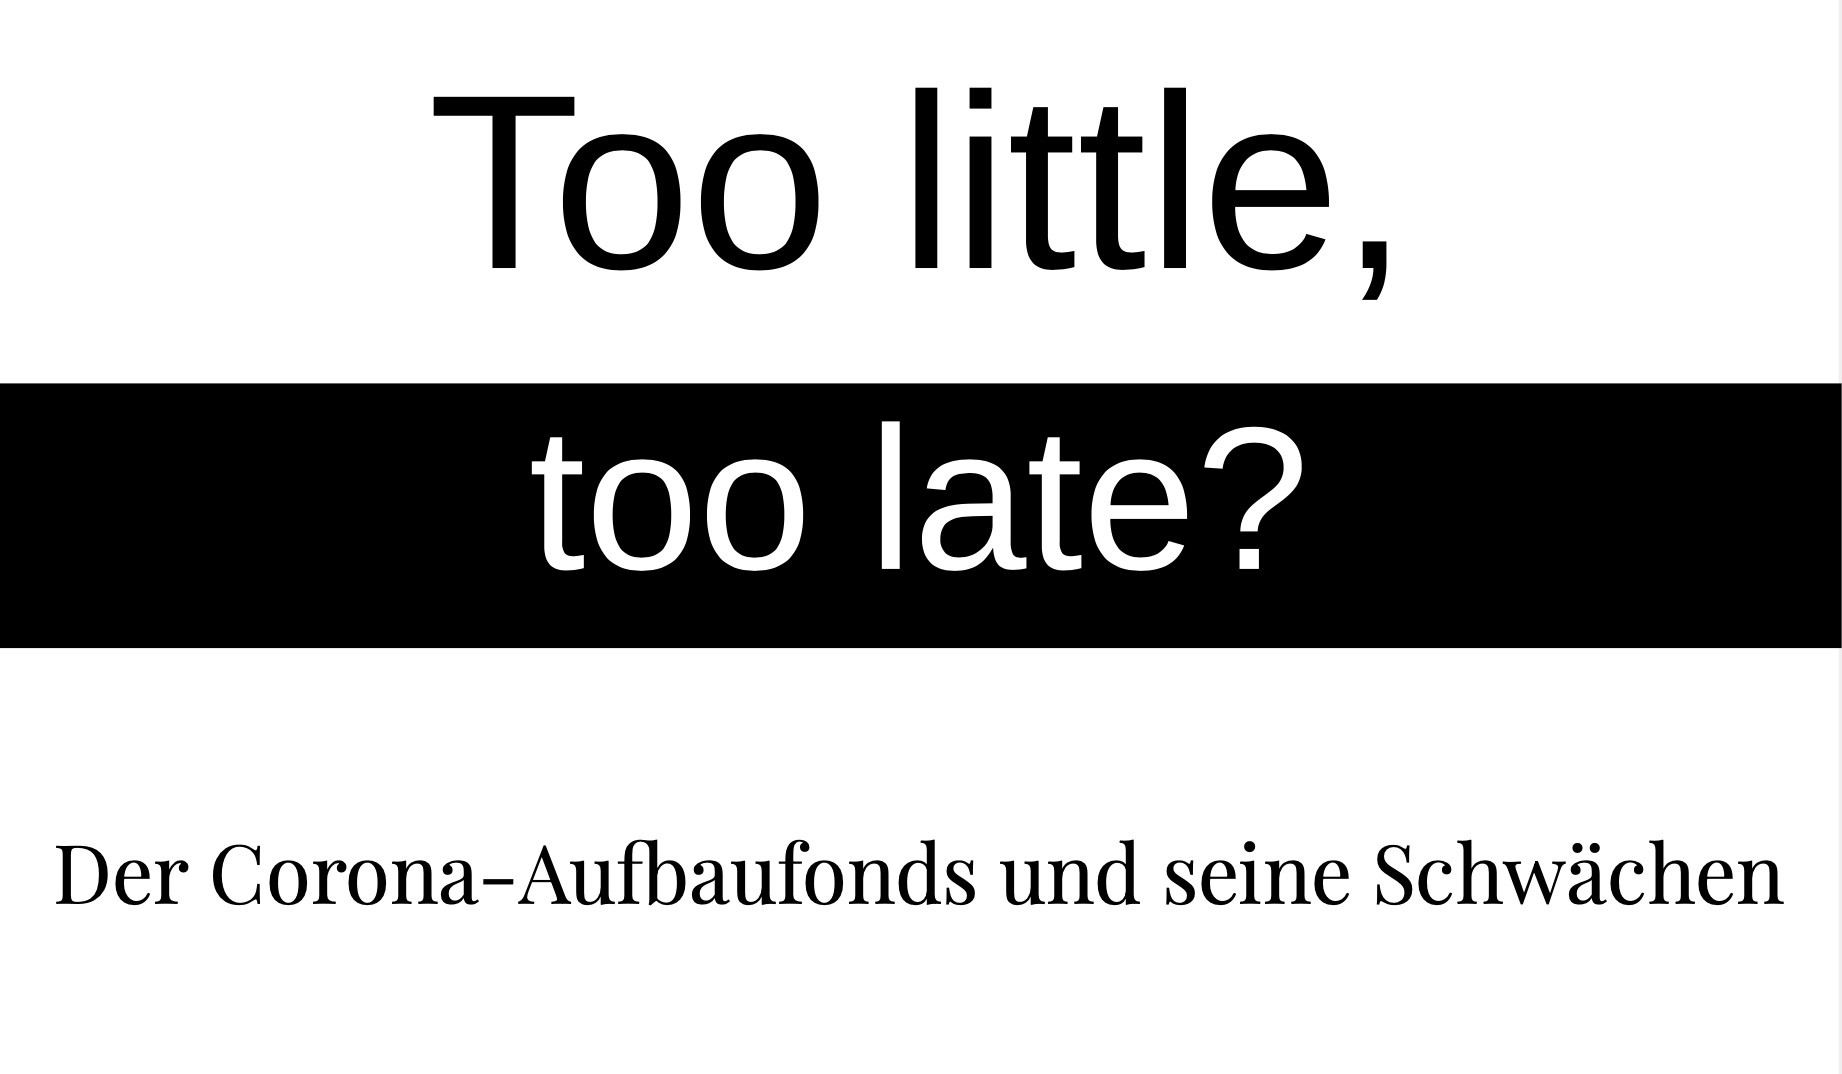 Too little, too late